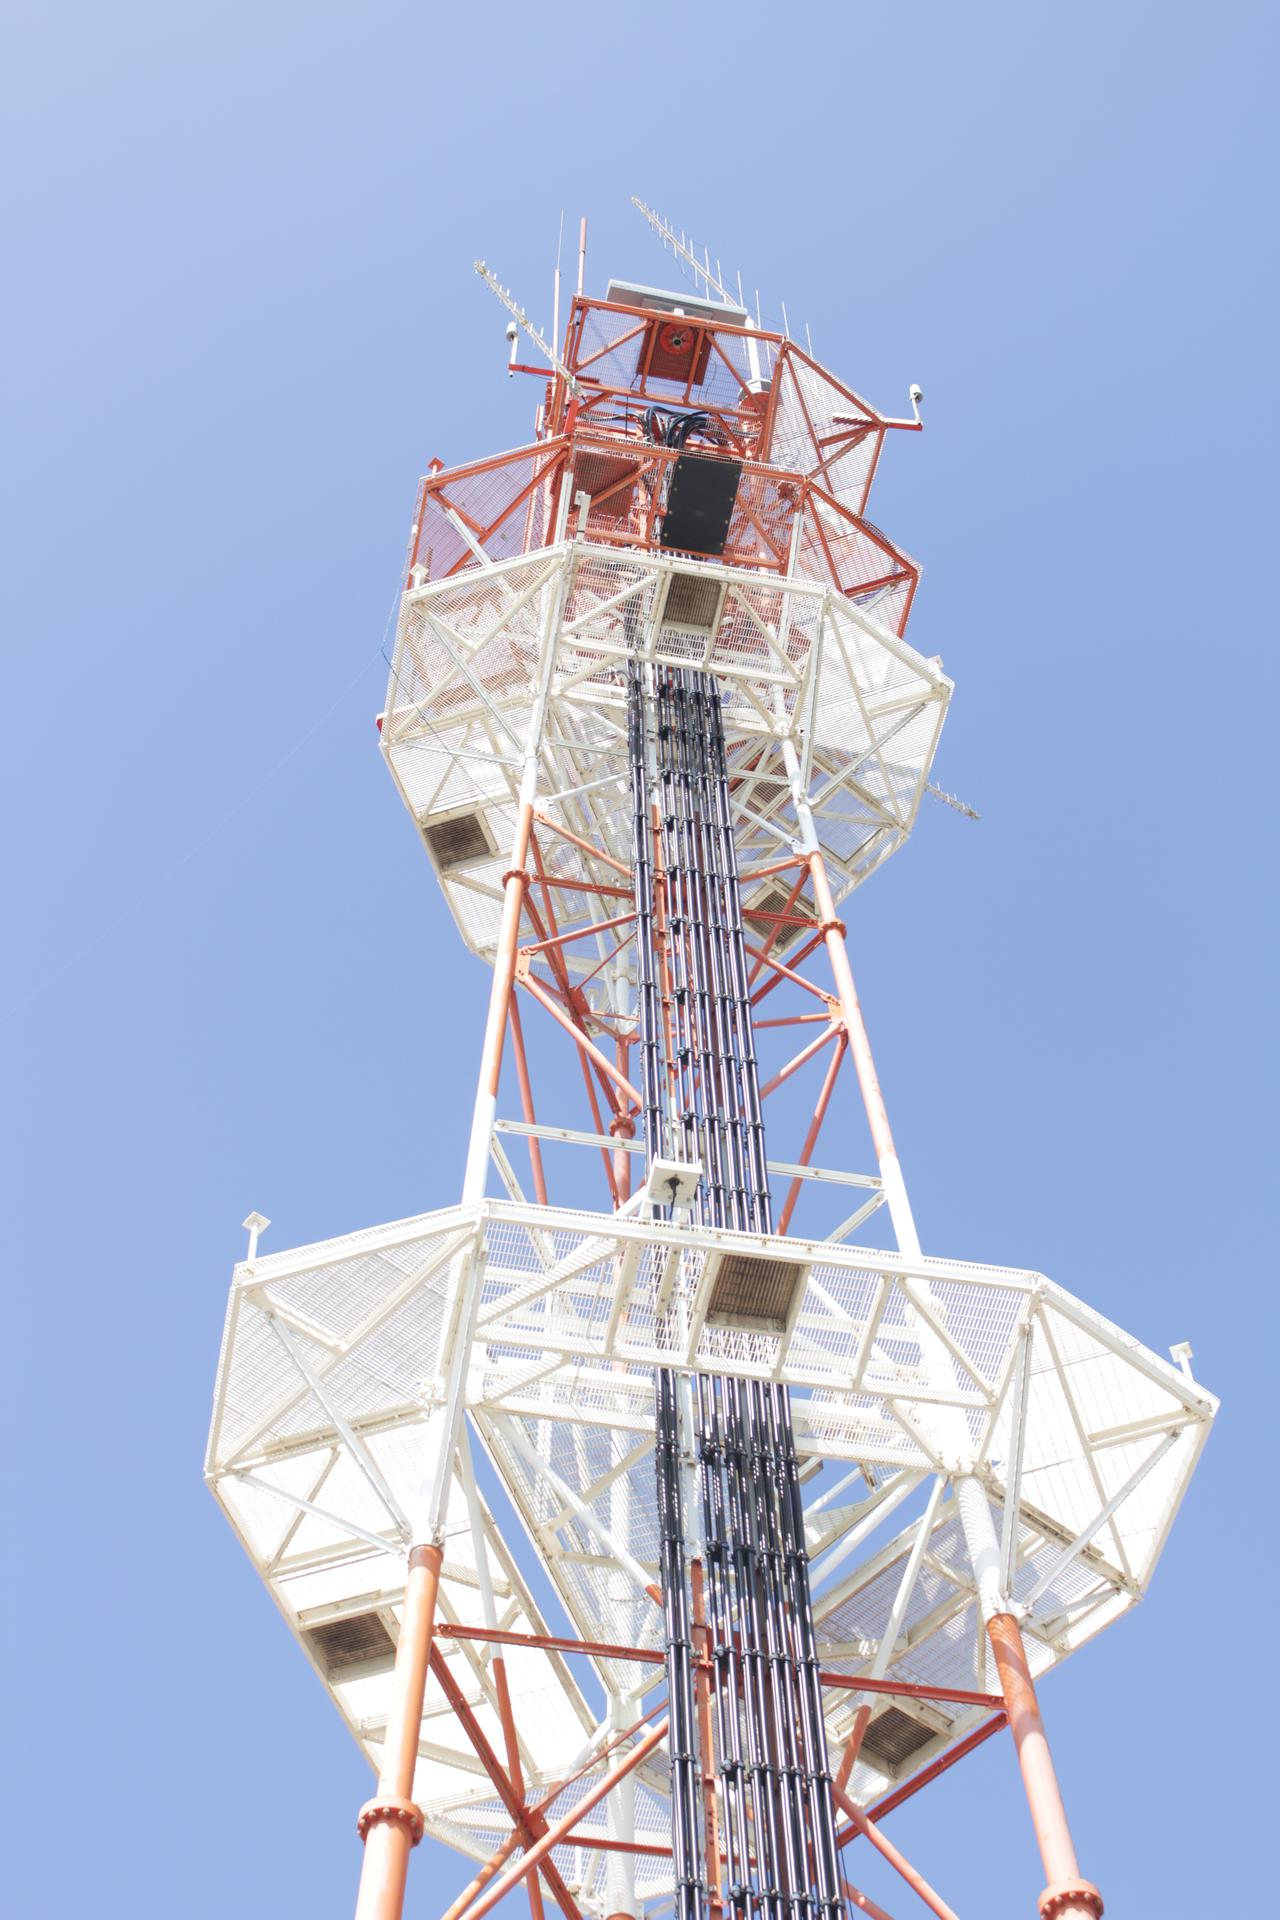 tower engingeering services and solutions for broadcast and communication towers